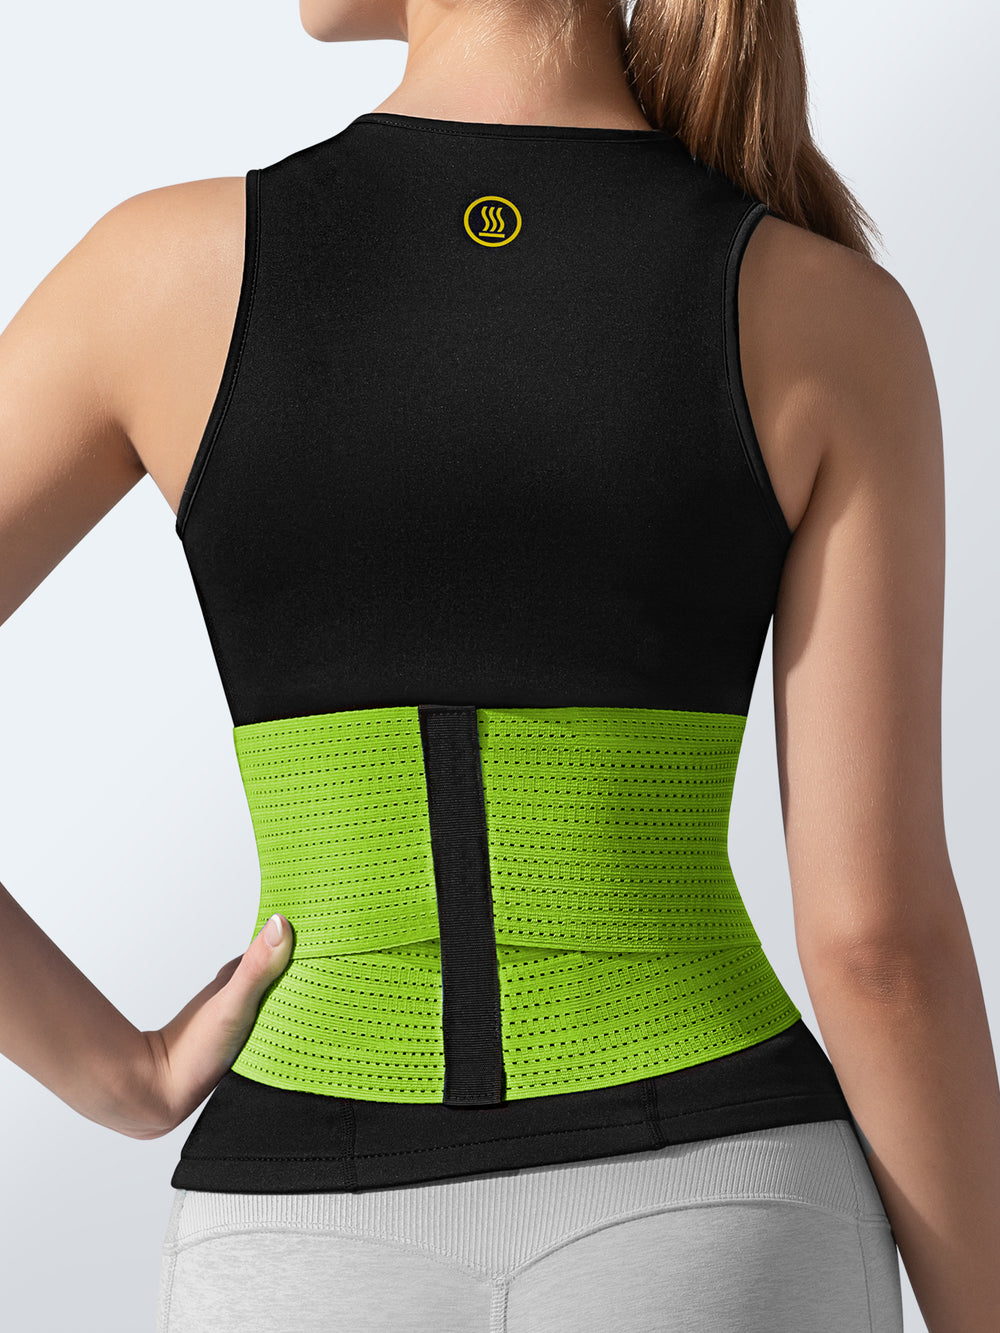 Hot Shapers - Cami Hot + Green Waist Trainer